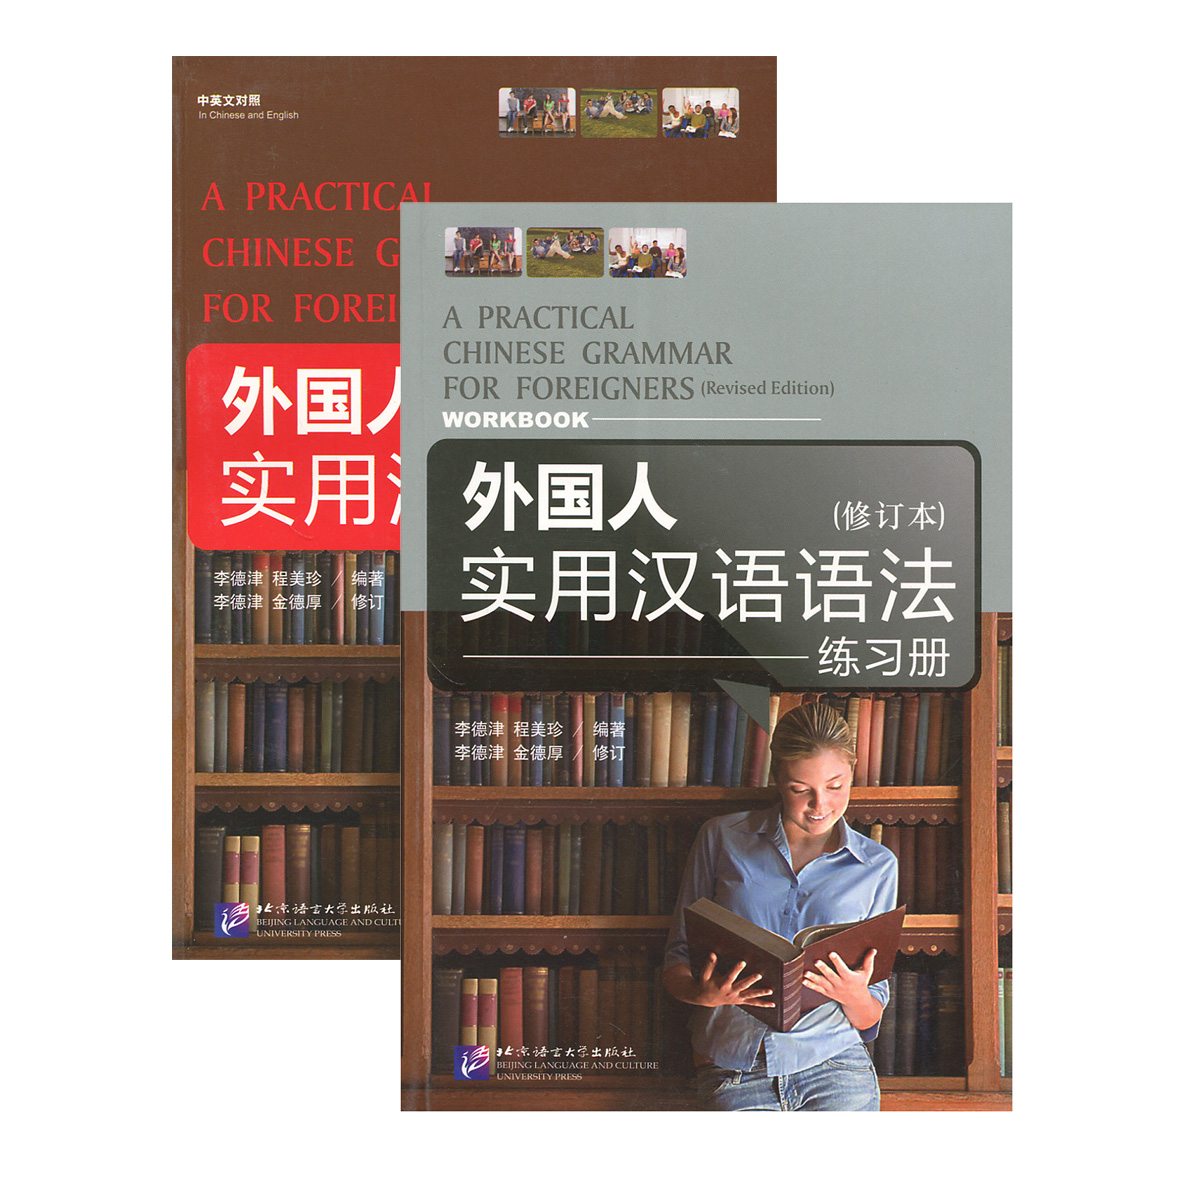 A Practical Chinese Grammar for Foreigners (комплект из 2 книг) foreign language ten difficulties errors in grammar book practical teaching chinese hanzi books